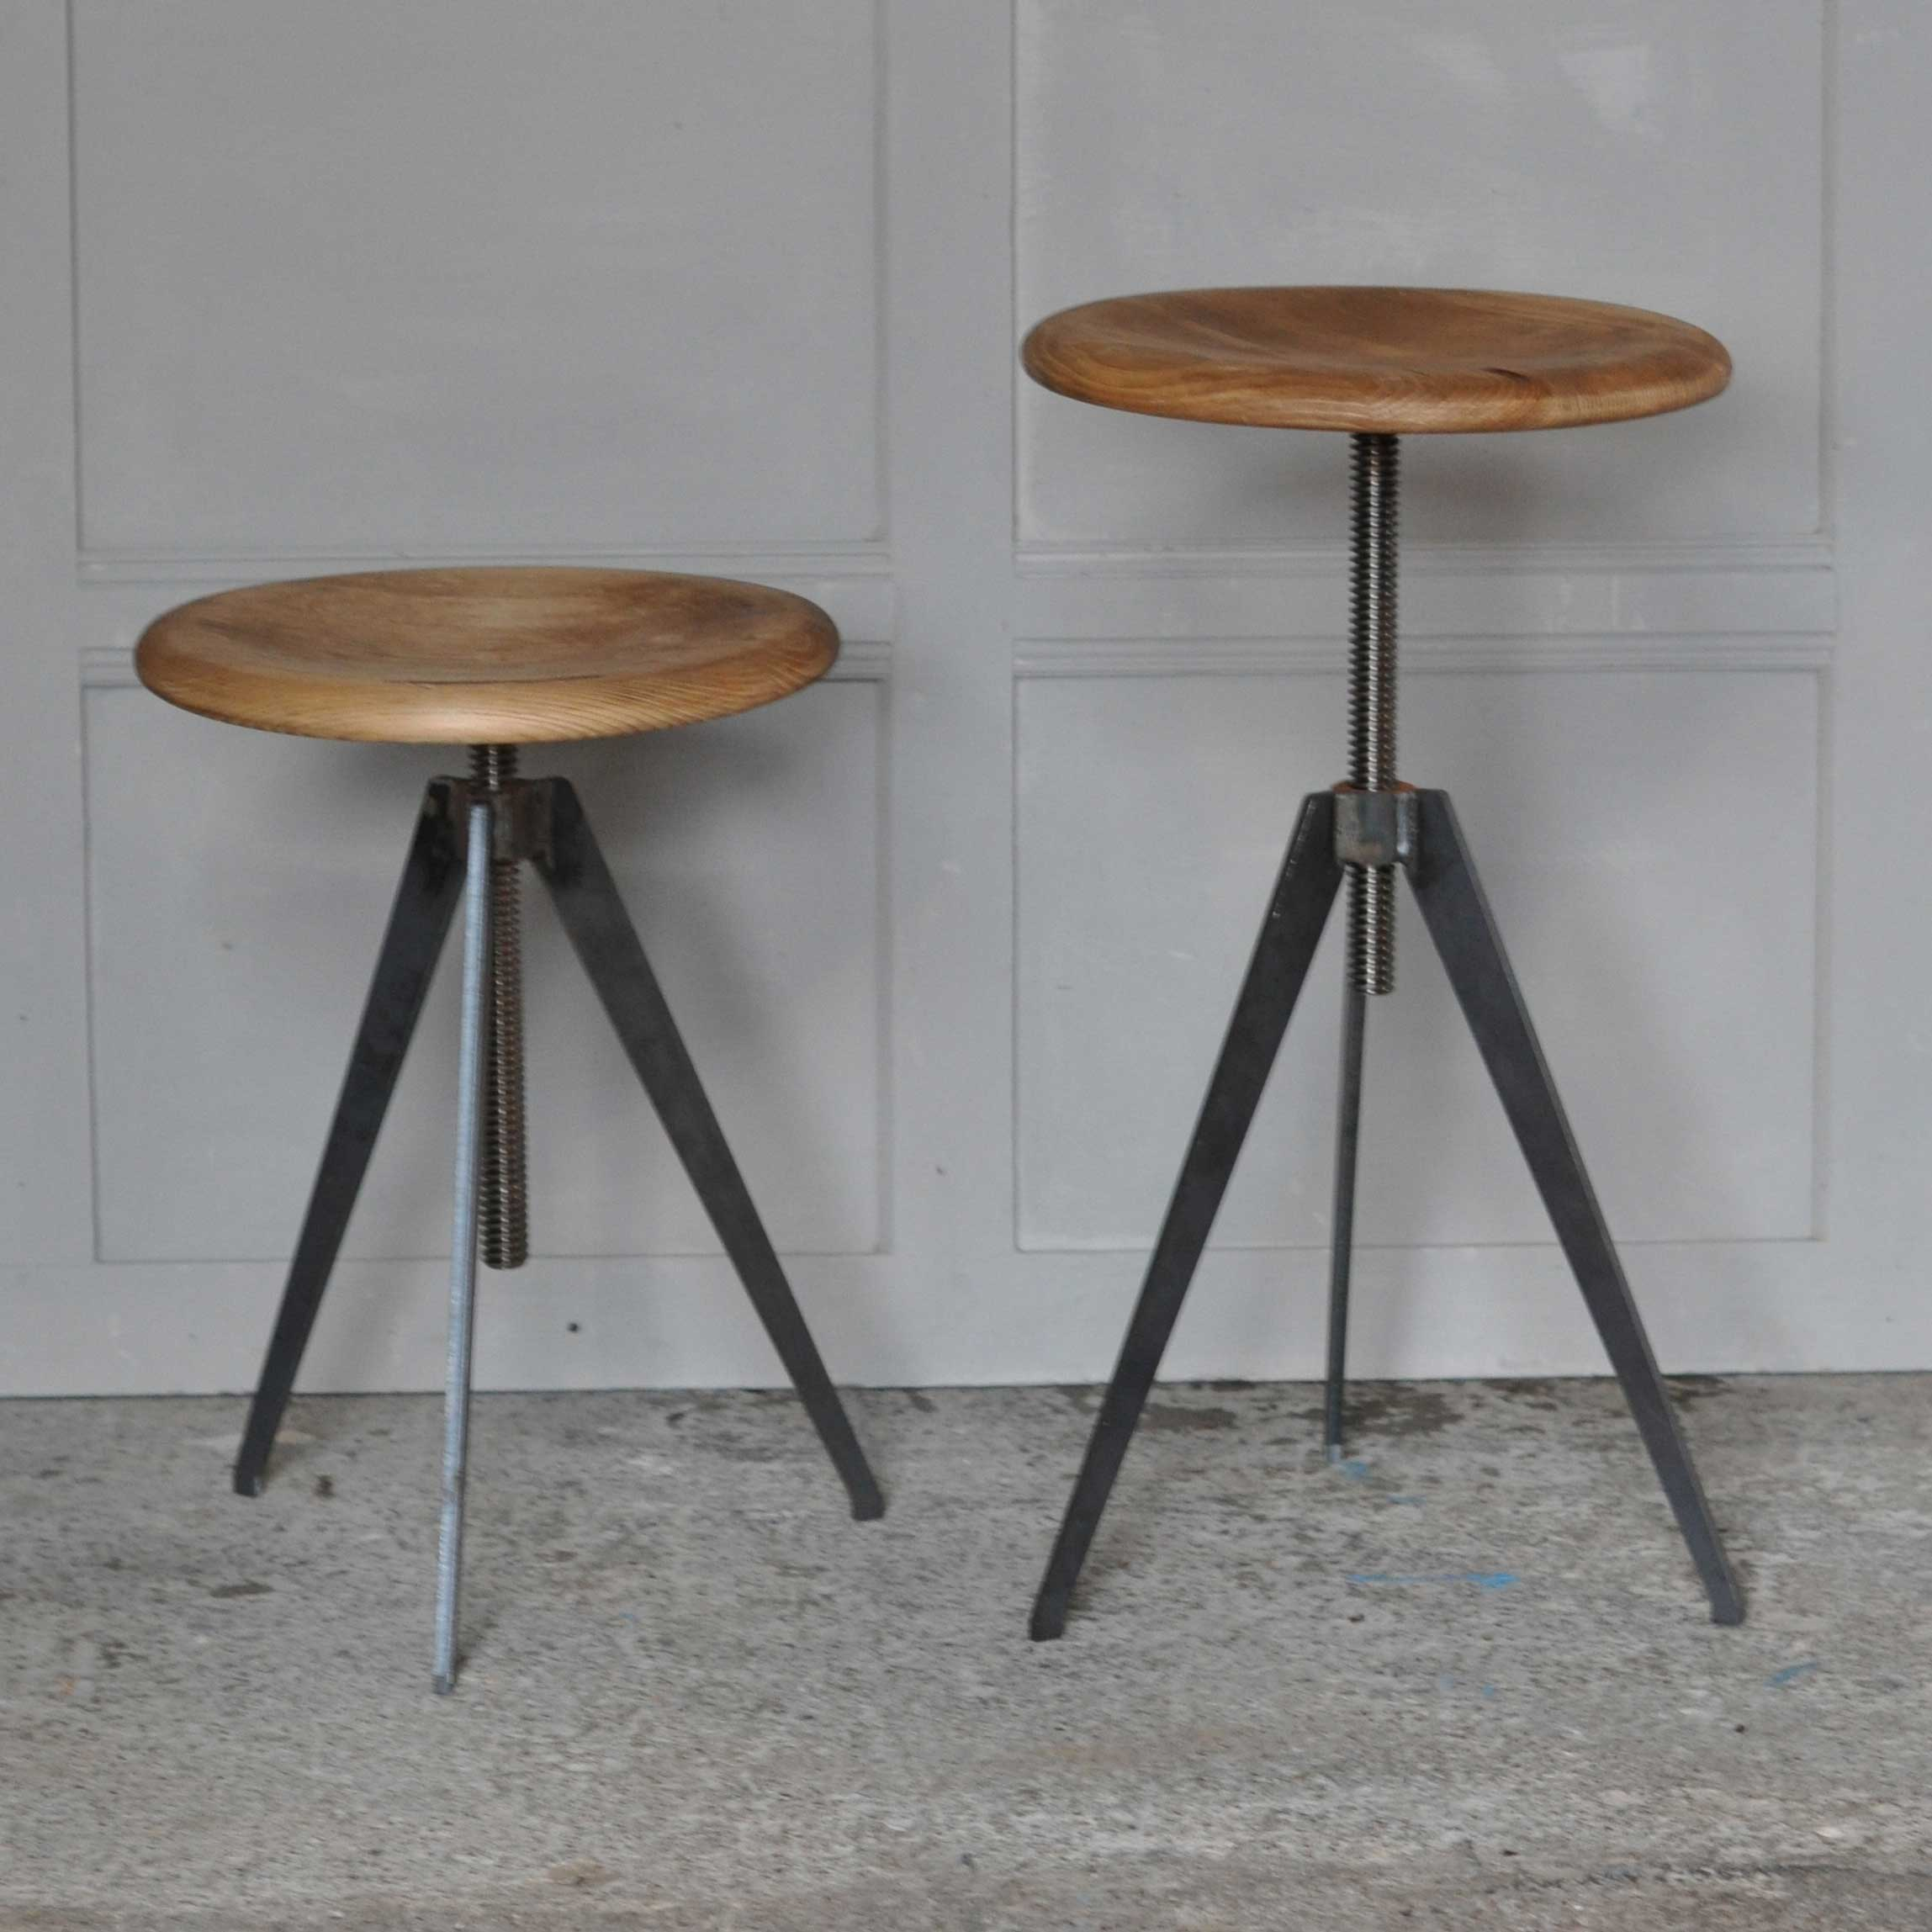 stool with wooden top with adjustable screw mechanism - industrial stool with wooden top with adjustable screw mechanism